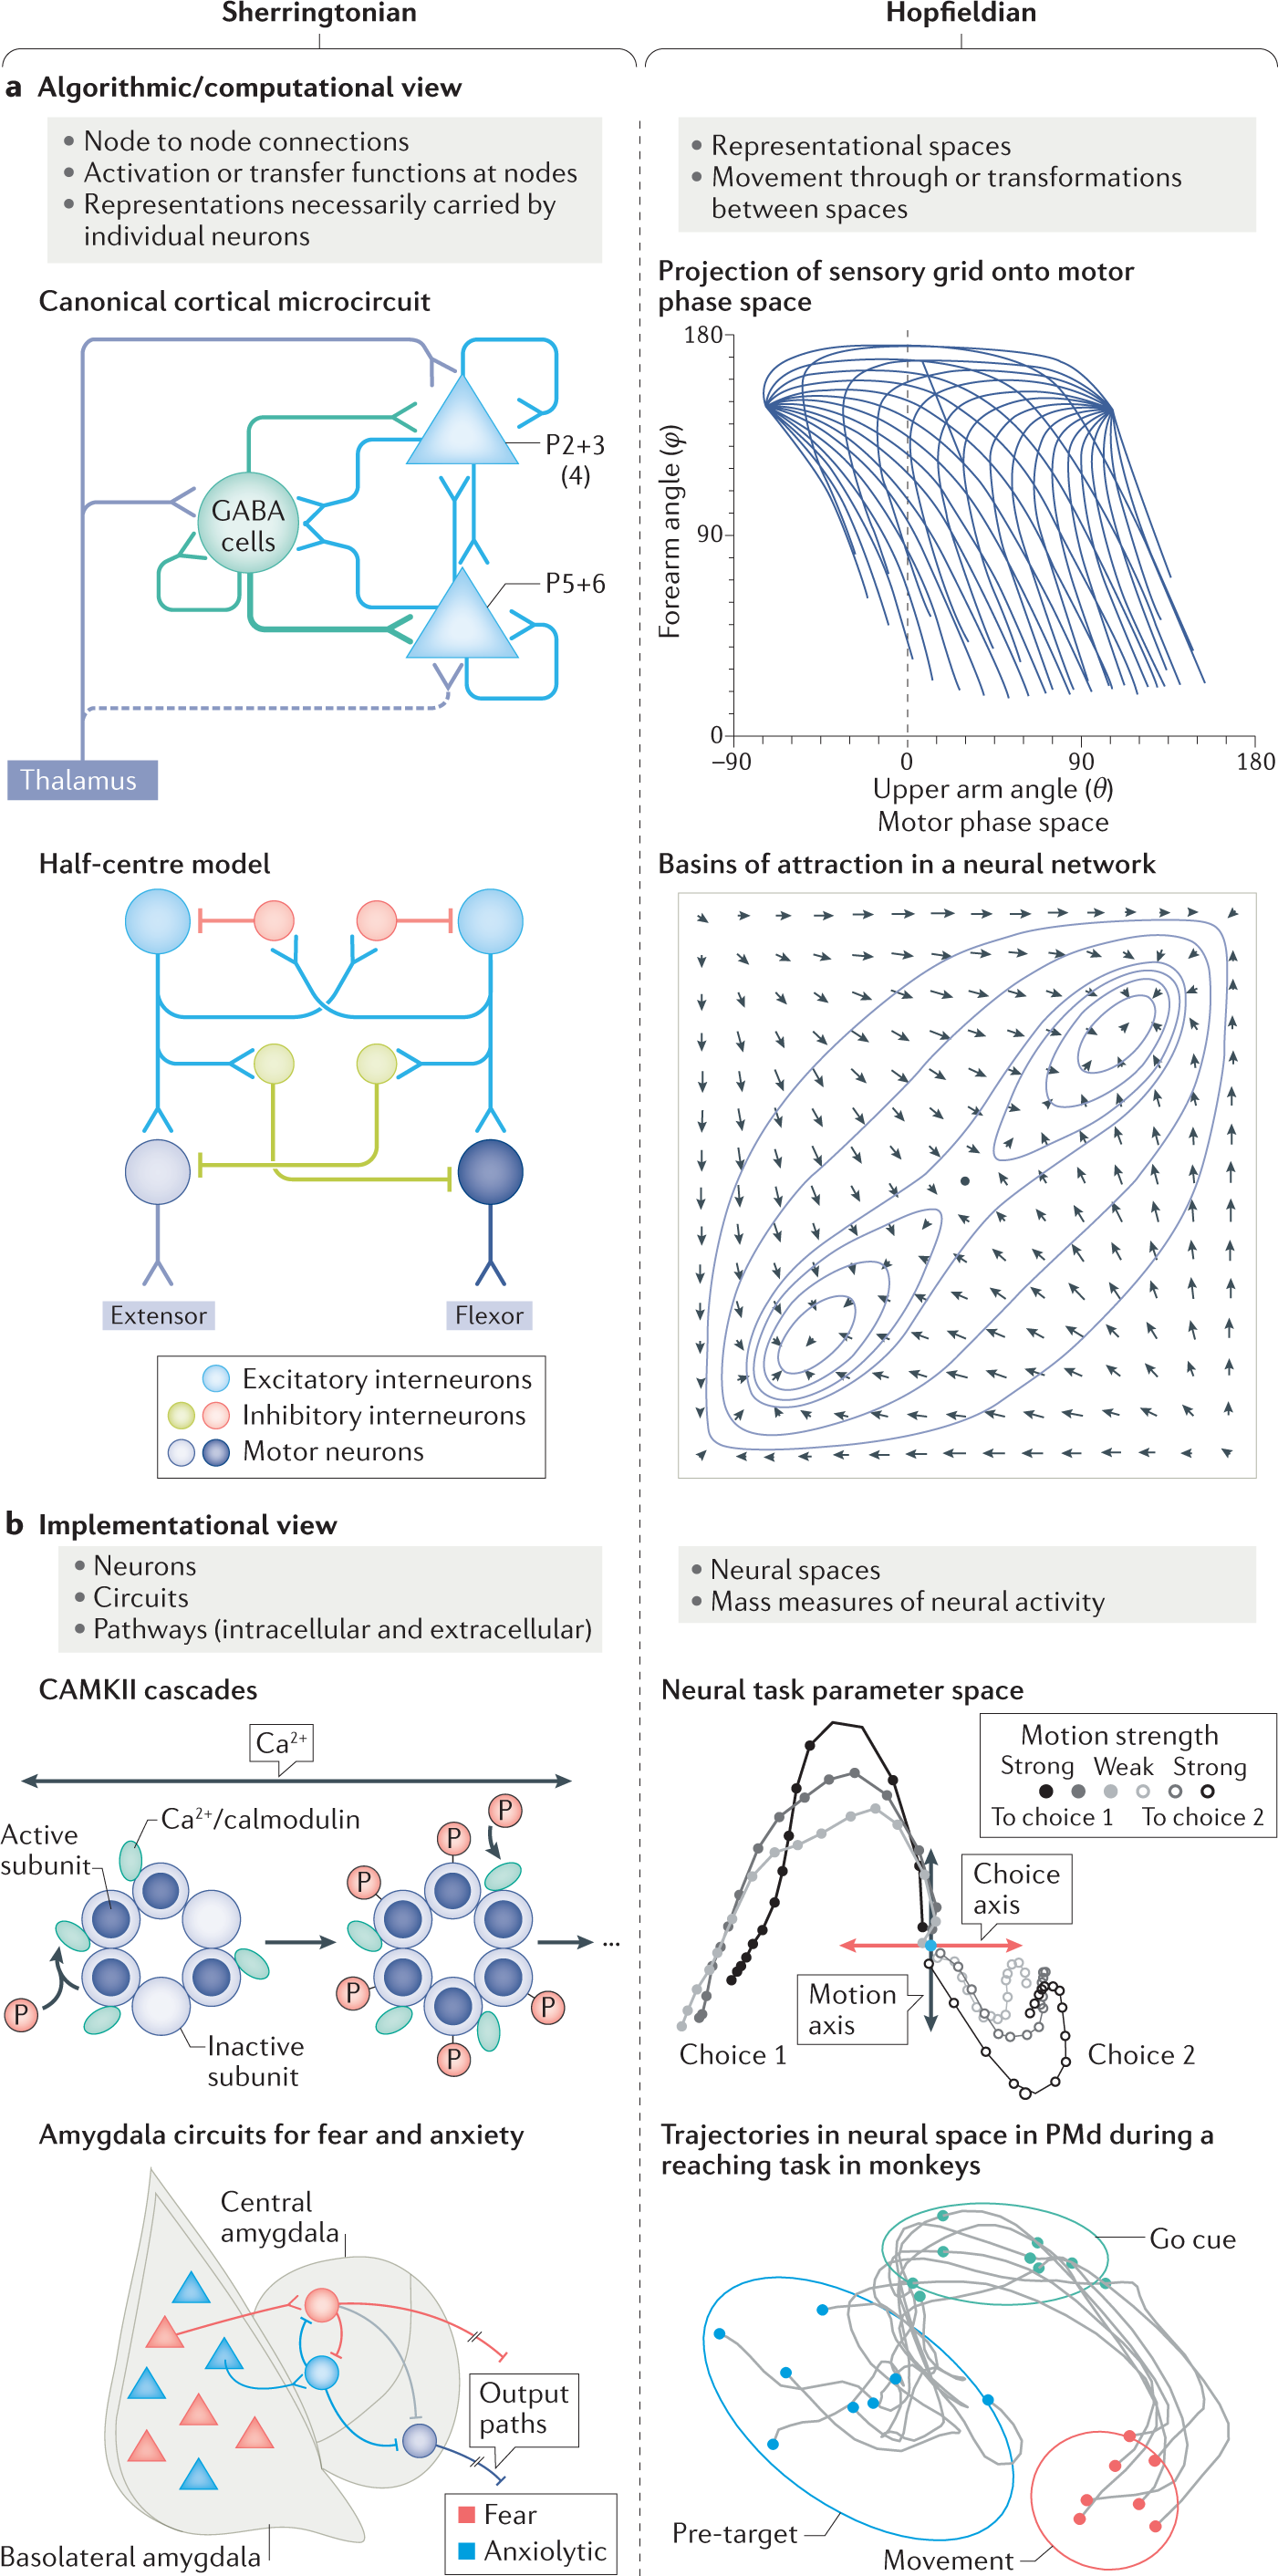 Two views on the cognitive brain   Nature Reviews Neuroscience